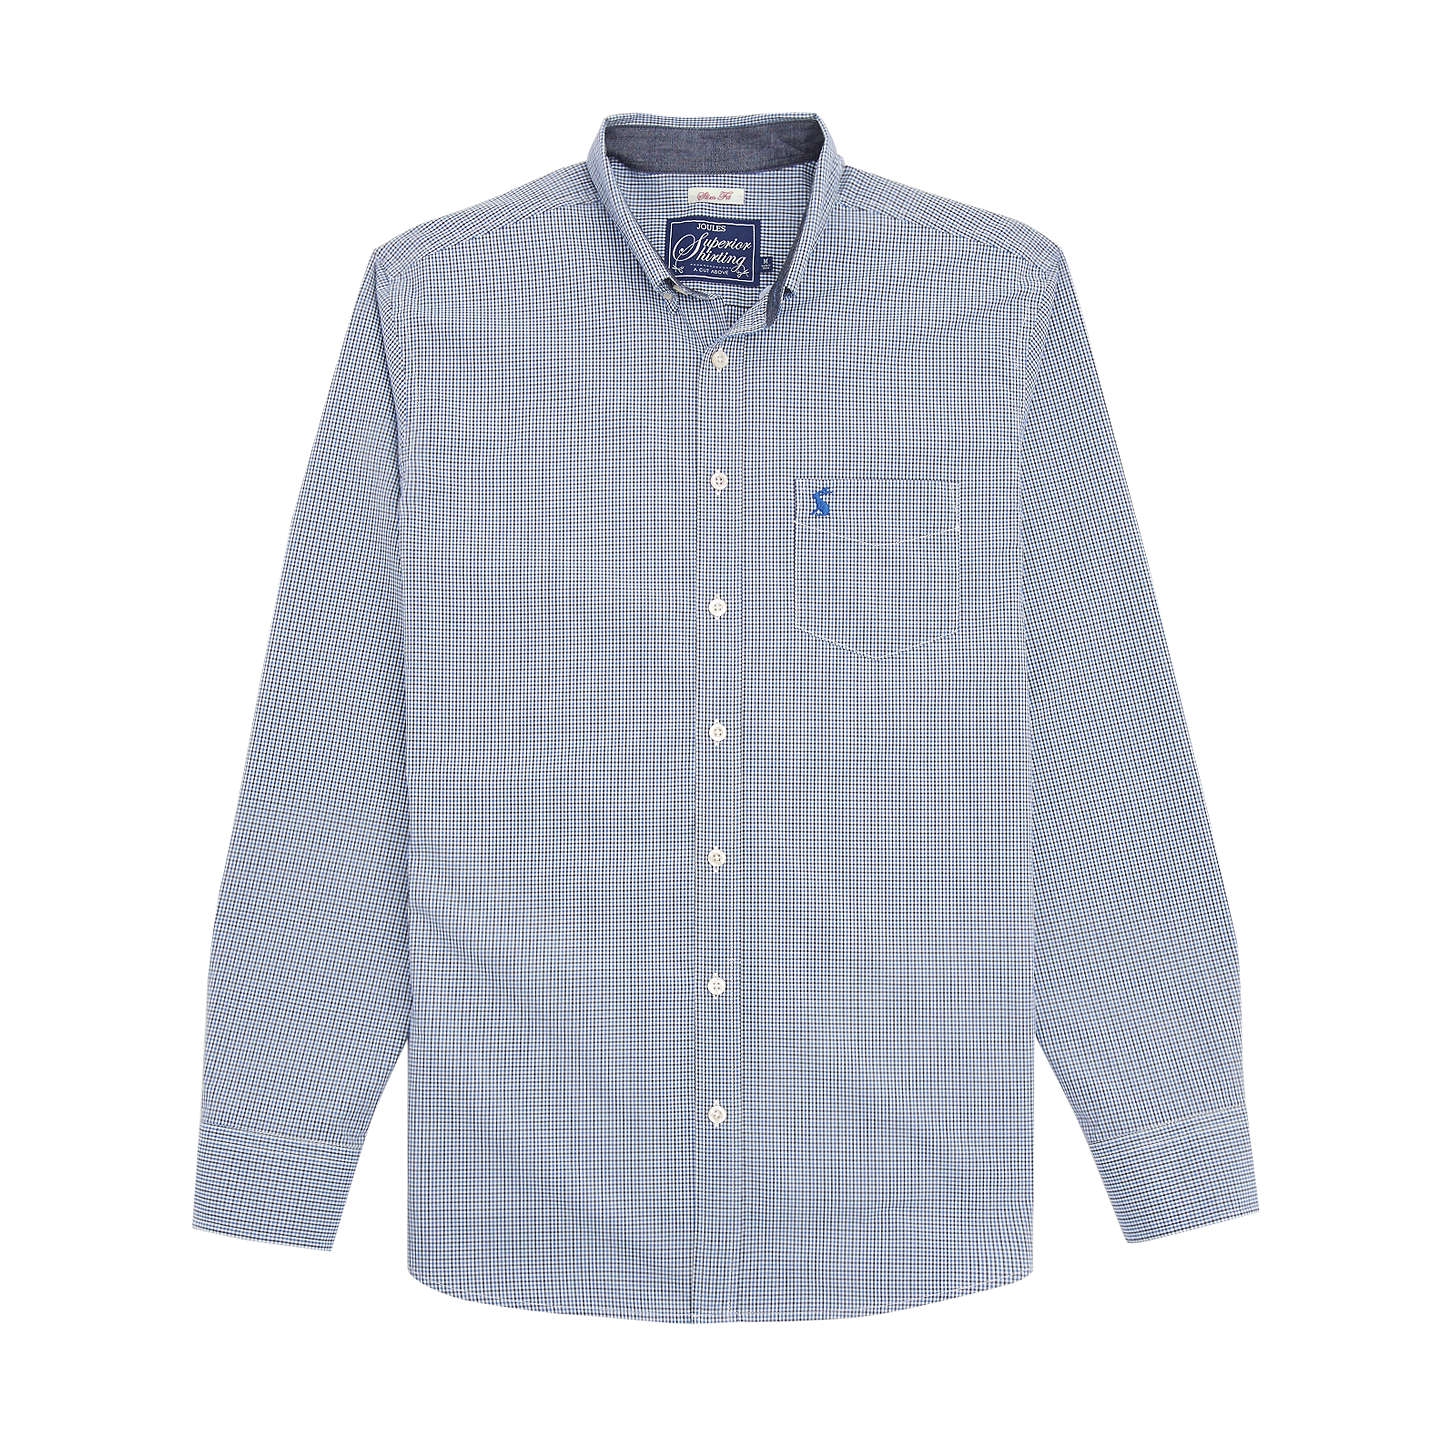 BuyJoules Hensley Gingham Slim Fit Shirt, Navy, XL Online at johnlewis.com